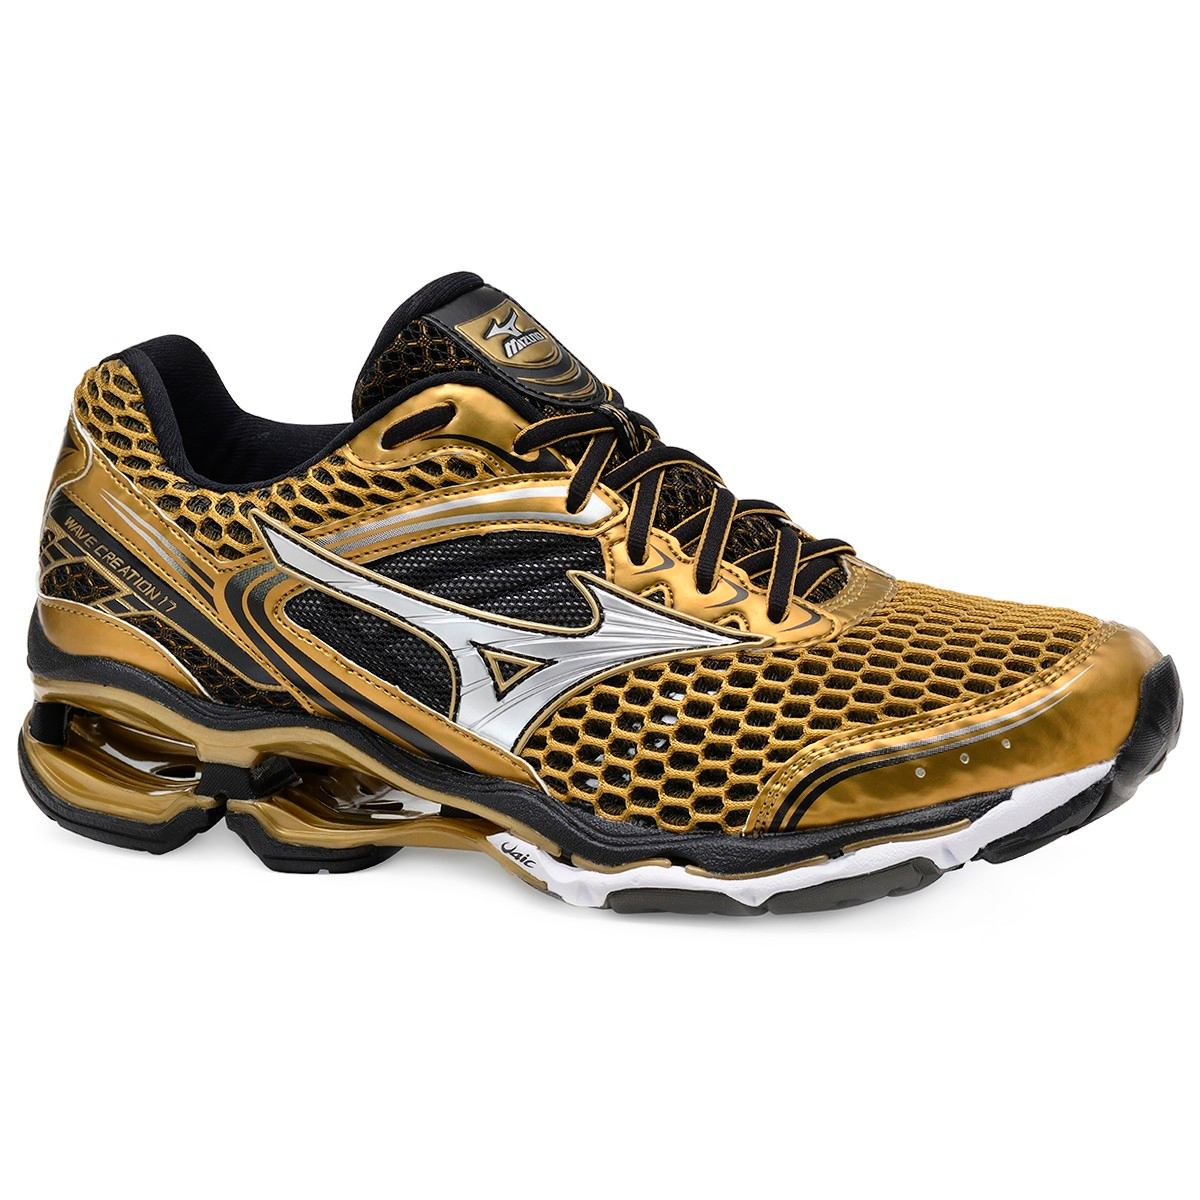 Tênis Mizuno Wave Creation 17 Golden Run Feminino Masculino - R  478 ... 68bfaa85bcd3d